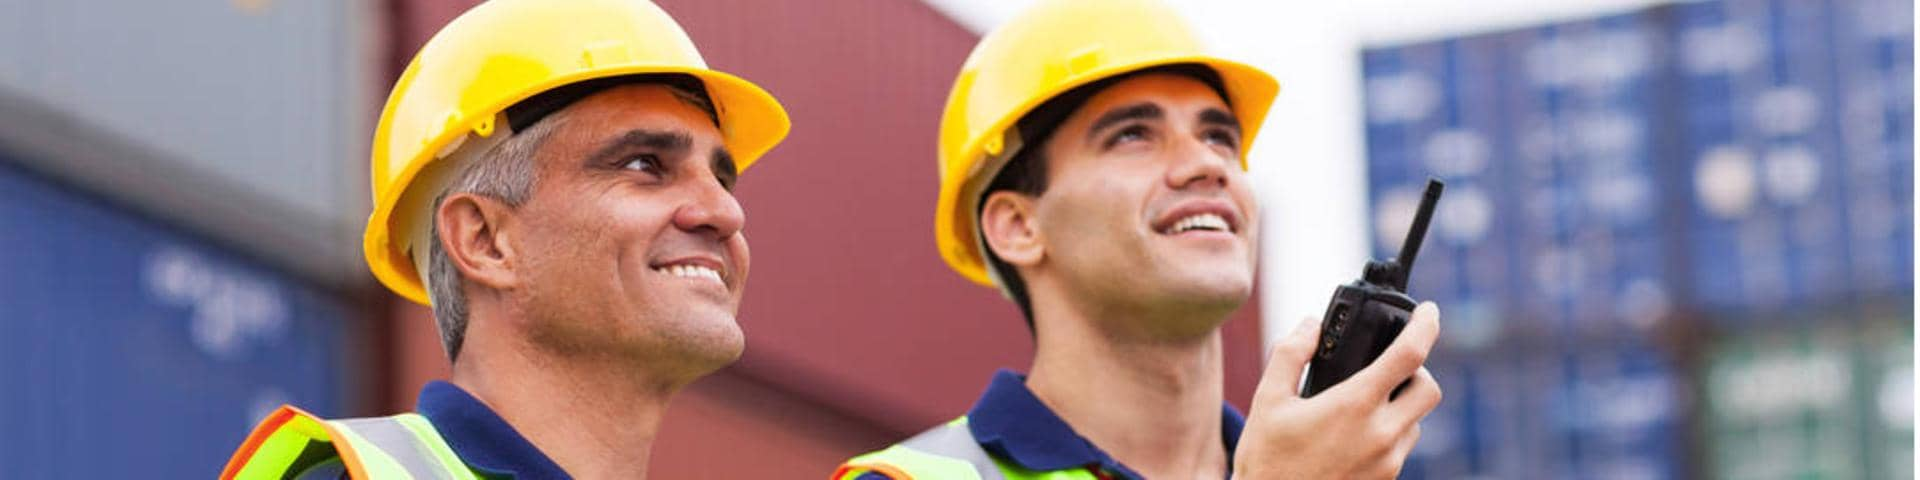 Workers logistics compliance